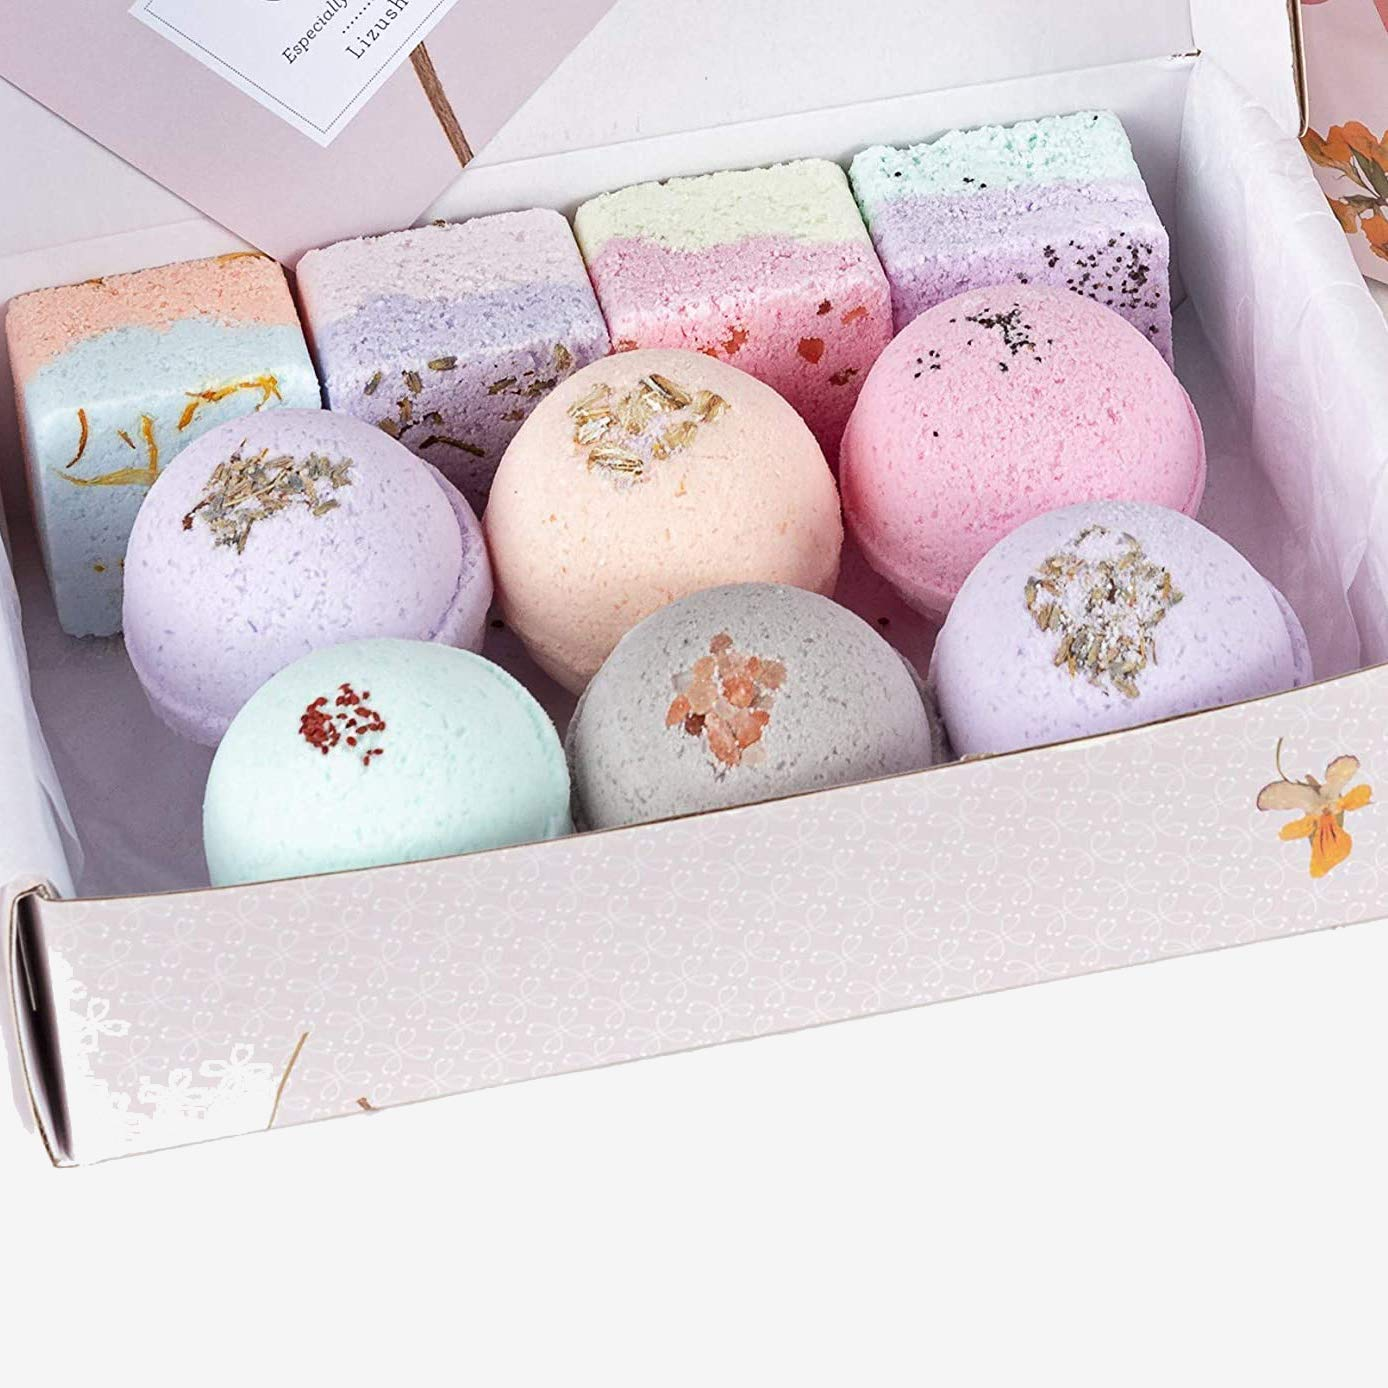 Handmade Moisturize Bath Bombs for Dry Skin Wife Mother by Lizush. Luxurious Premium Quality Special Gift for Woman Bath bombs Gift Box Natural Handmade Spa Bath Salts Fizzies Set of 10